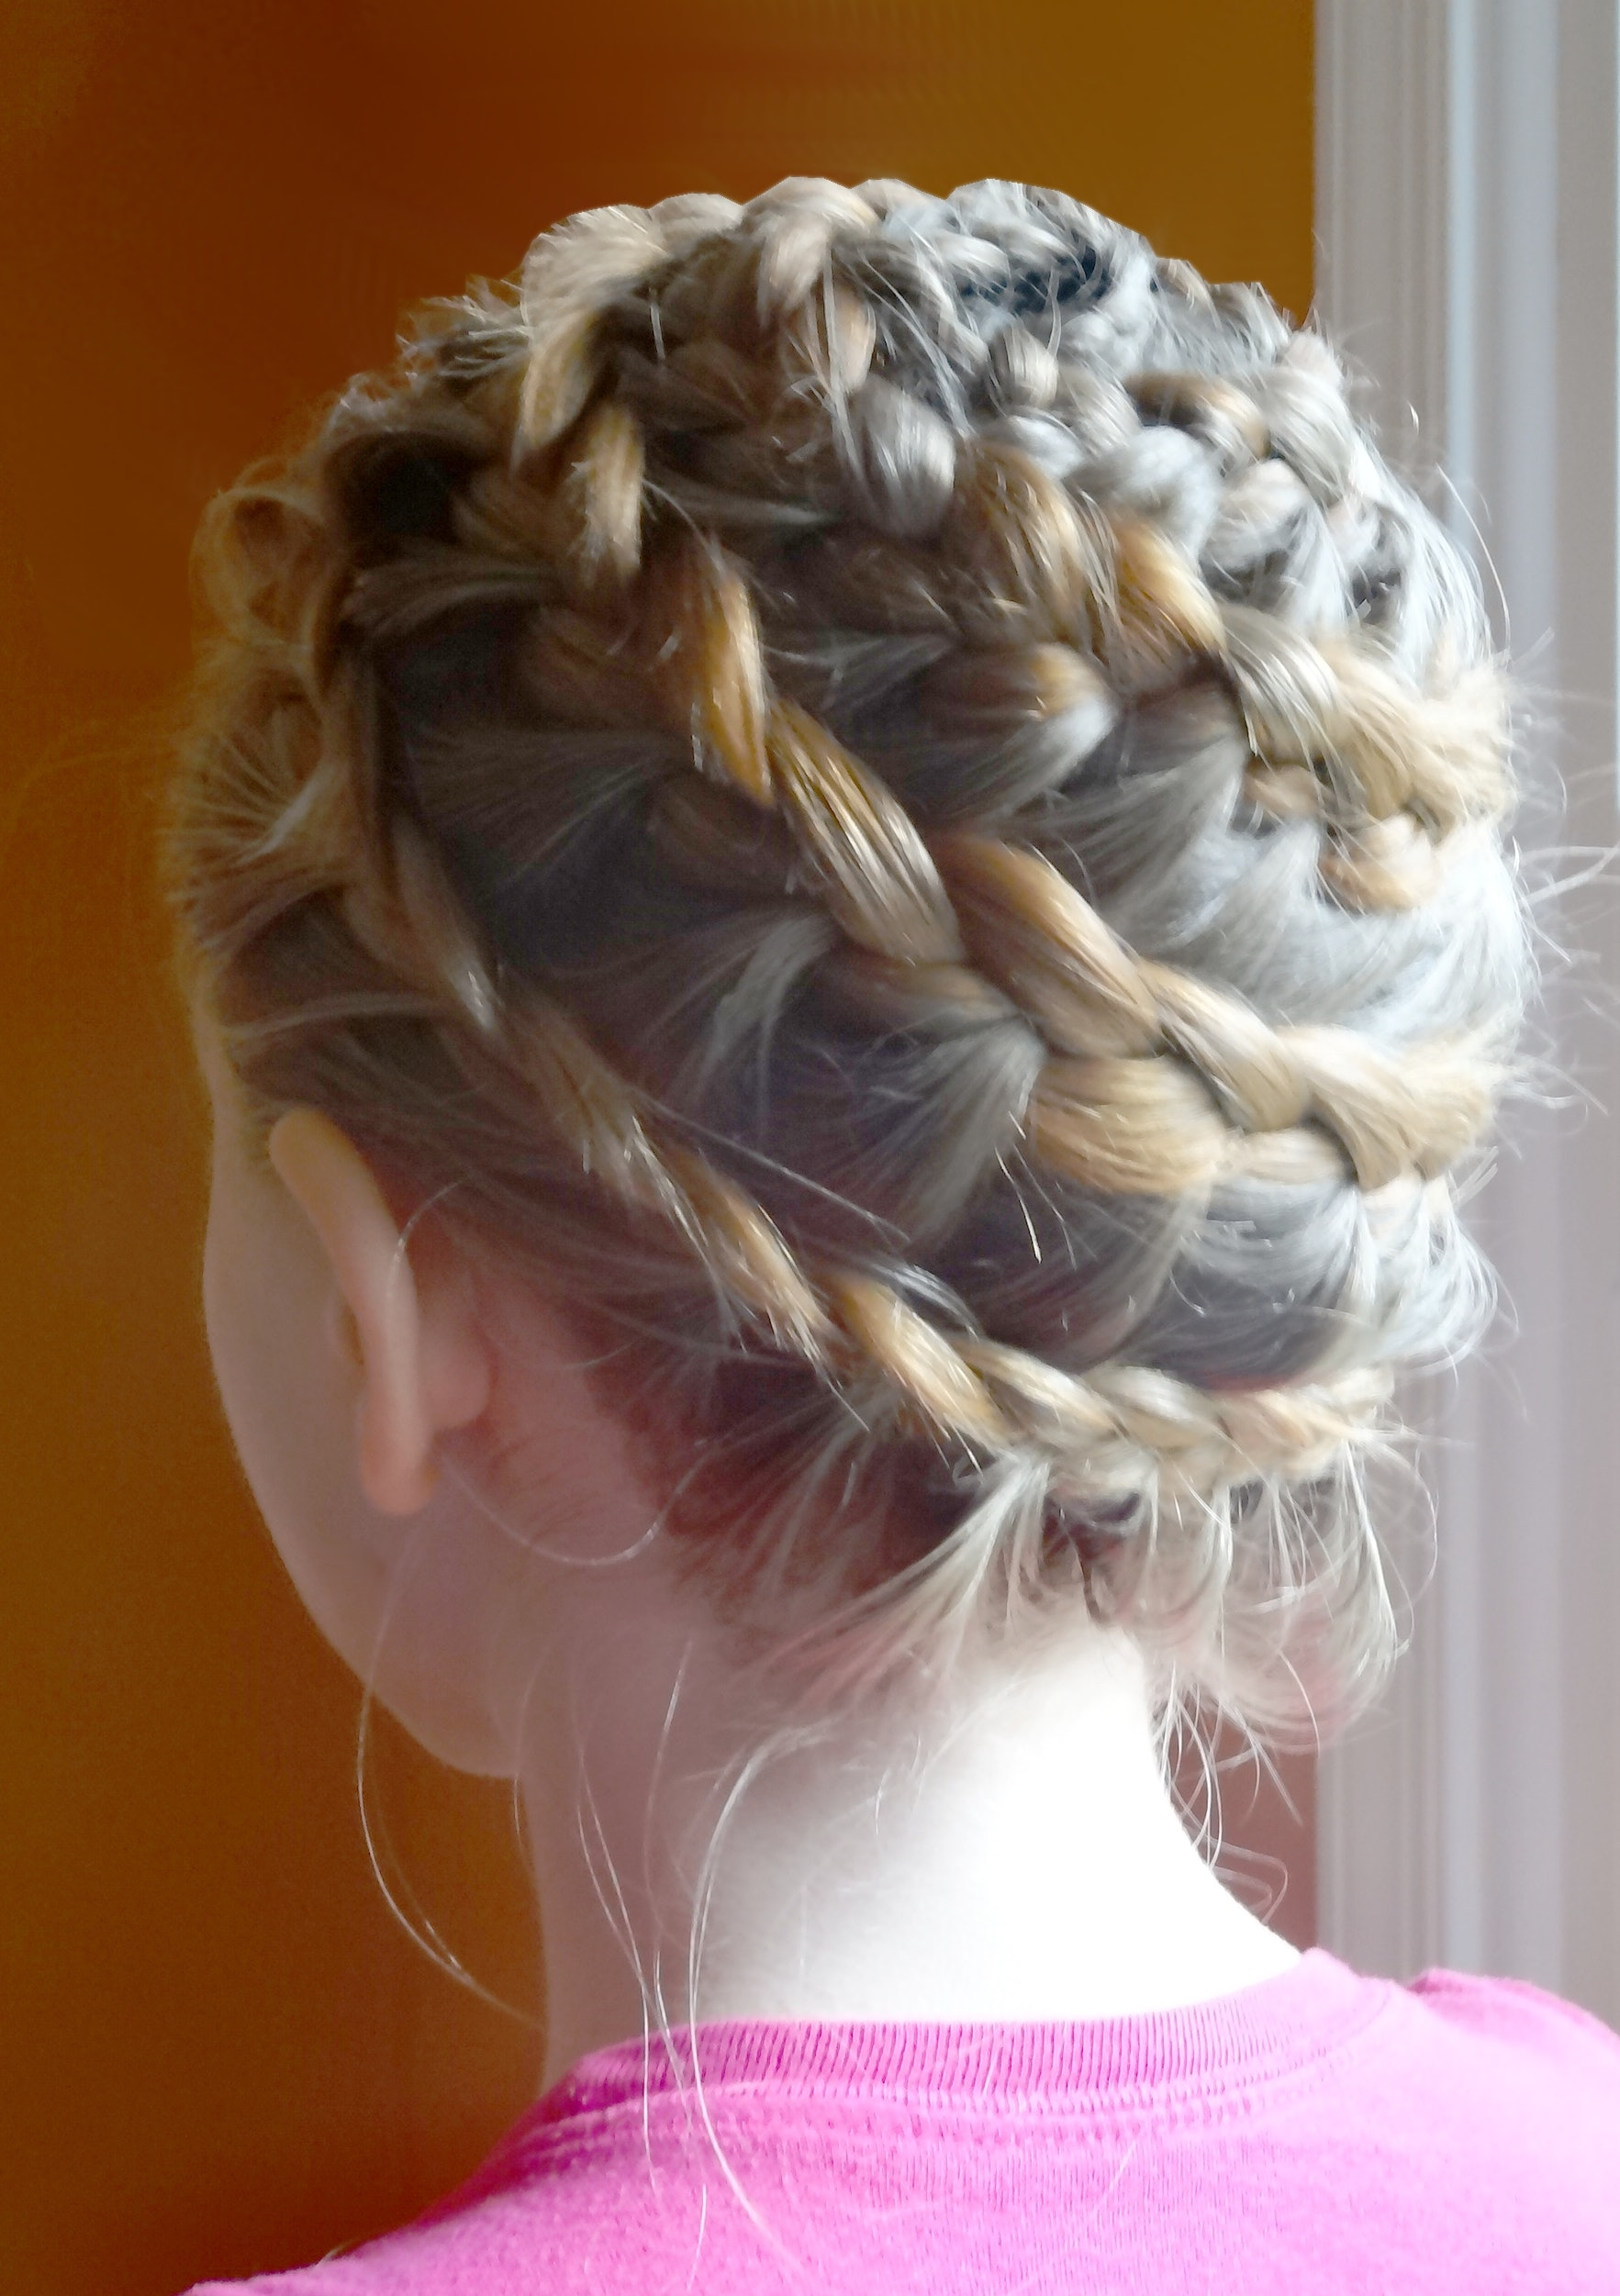 39 Pretty Wedding Day Updos To Inspire Your Big Day Look